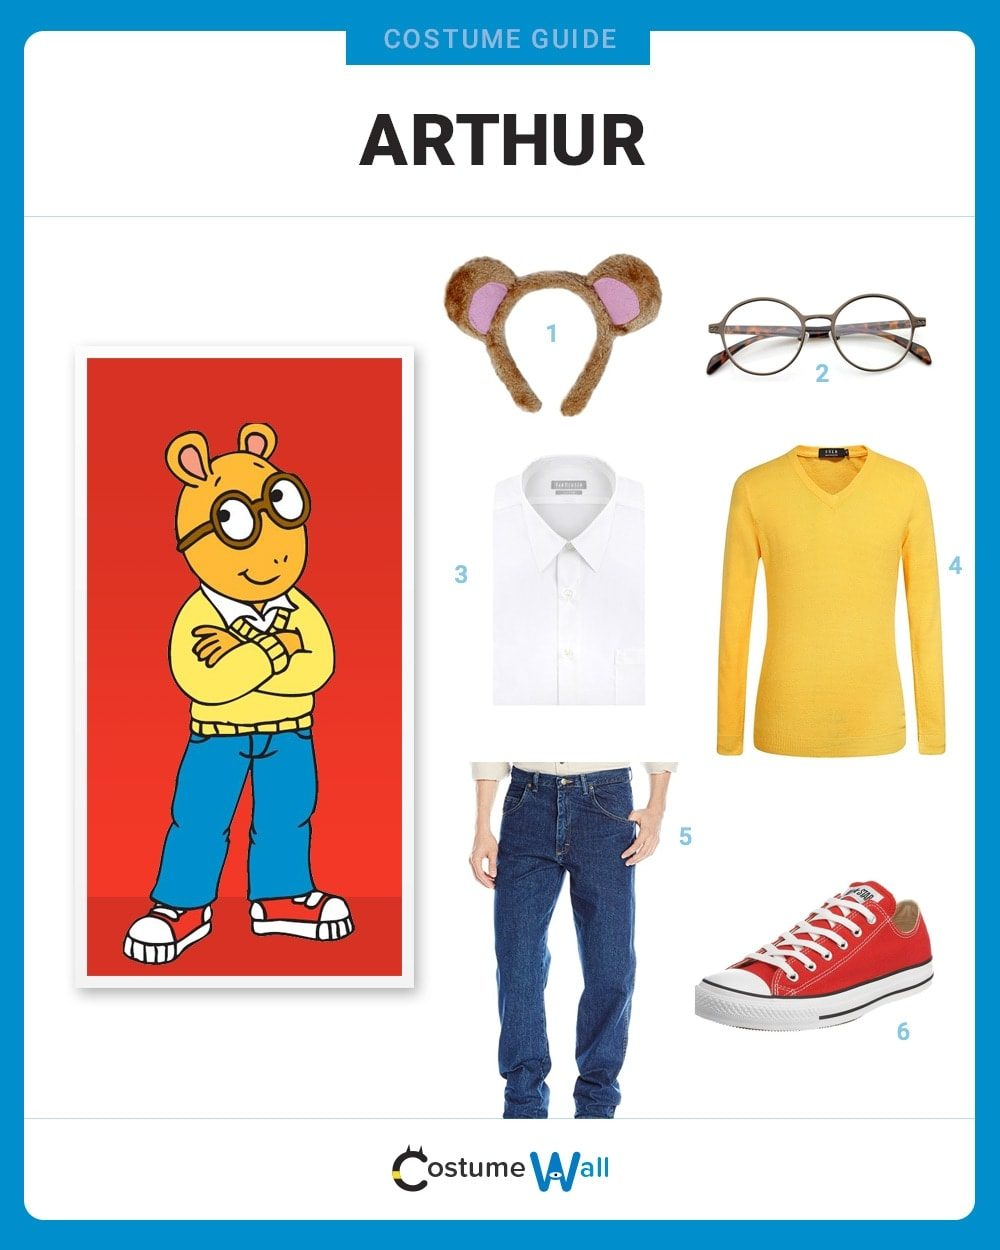 Arthur Costume Guide